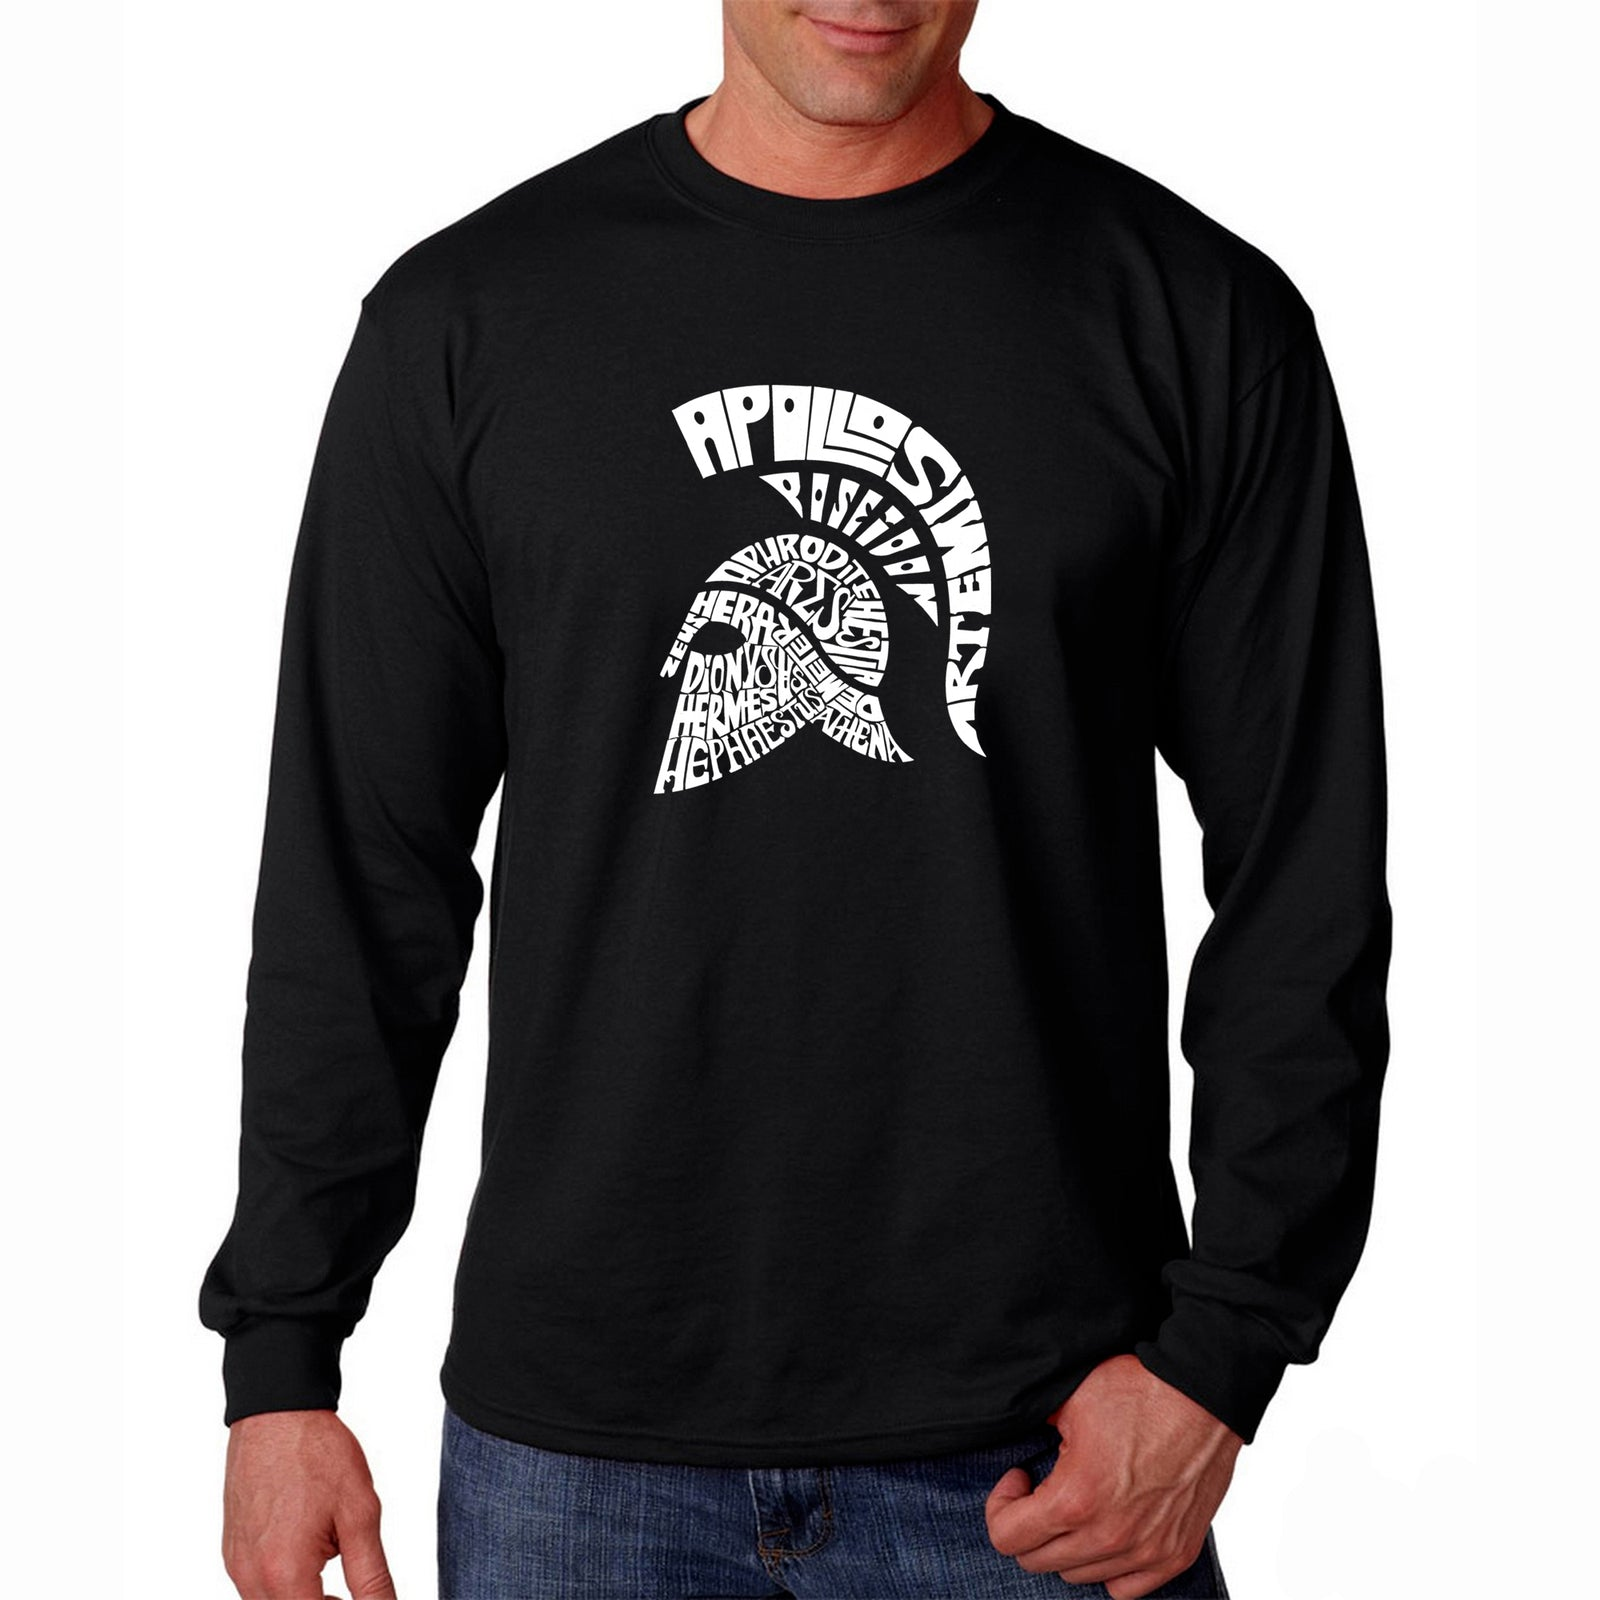 Men's Long Sleeve T-shirt - SPARTAN